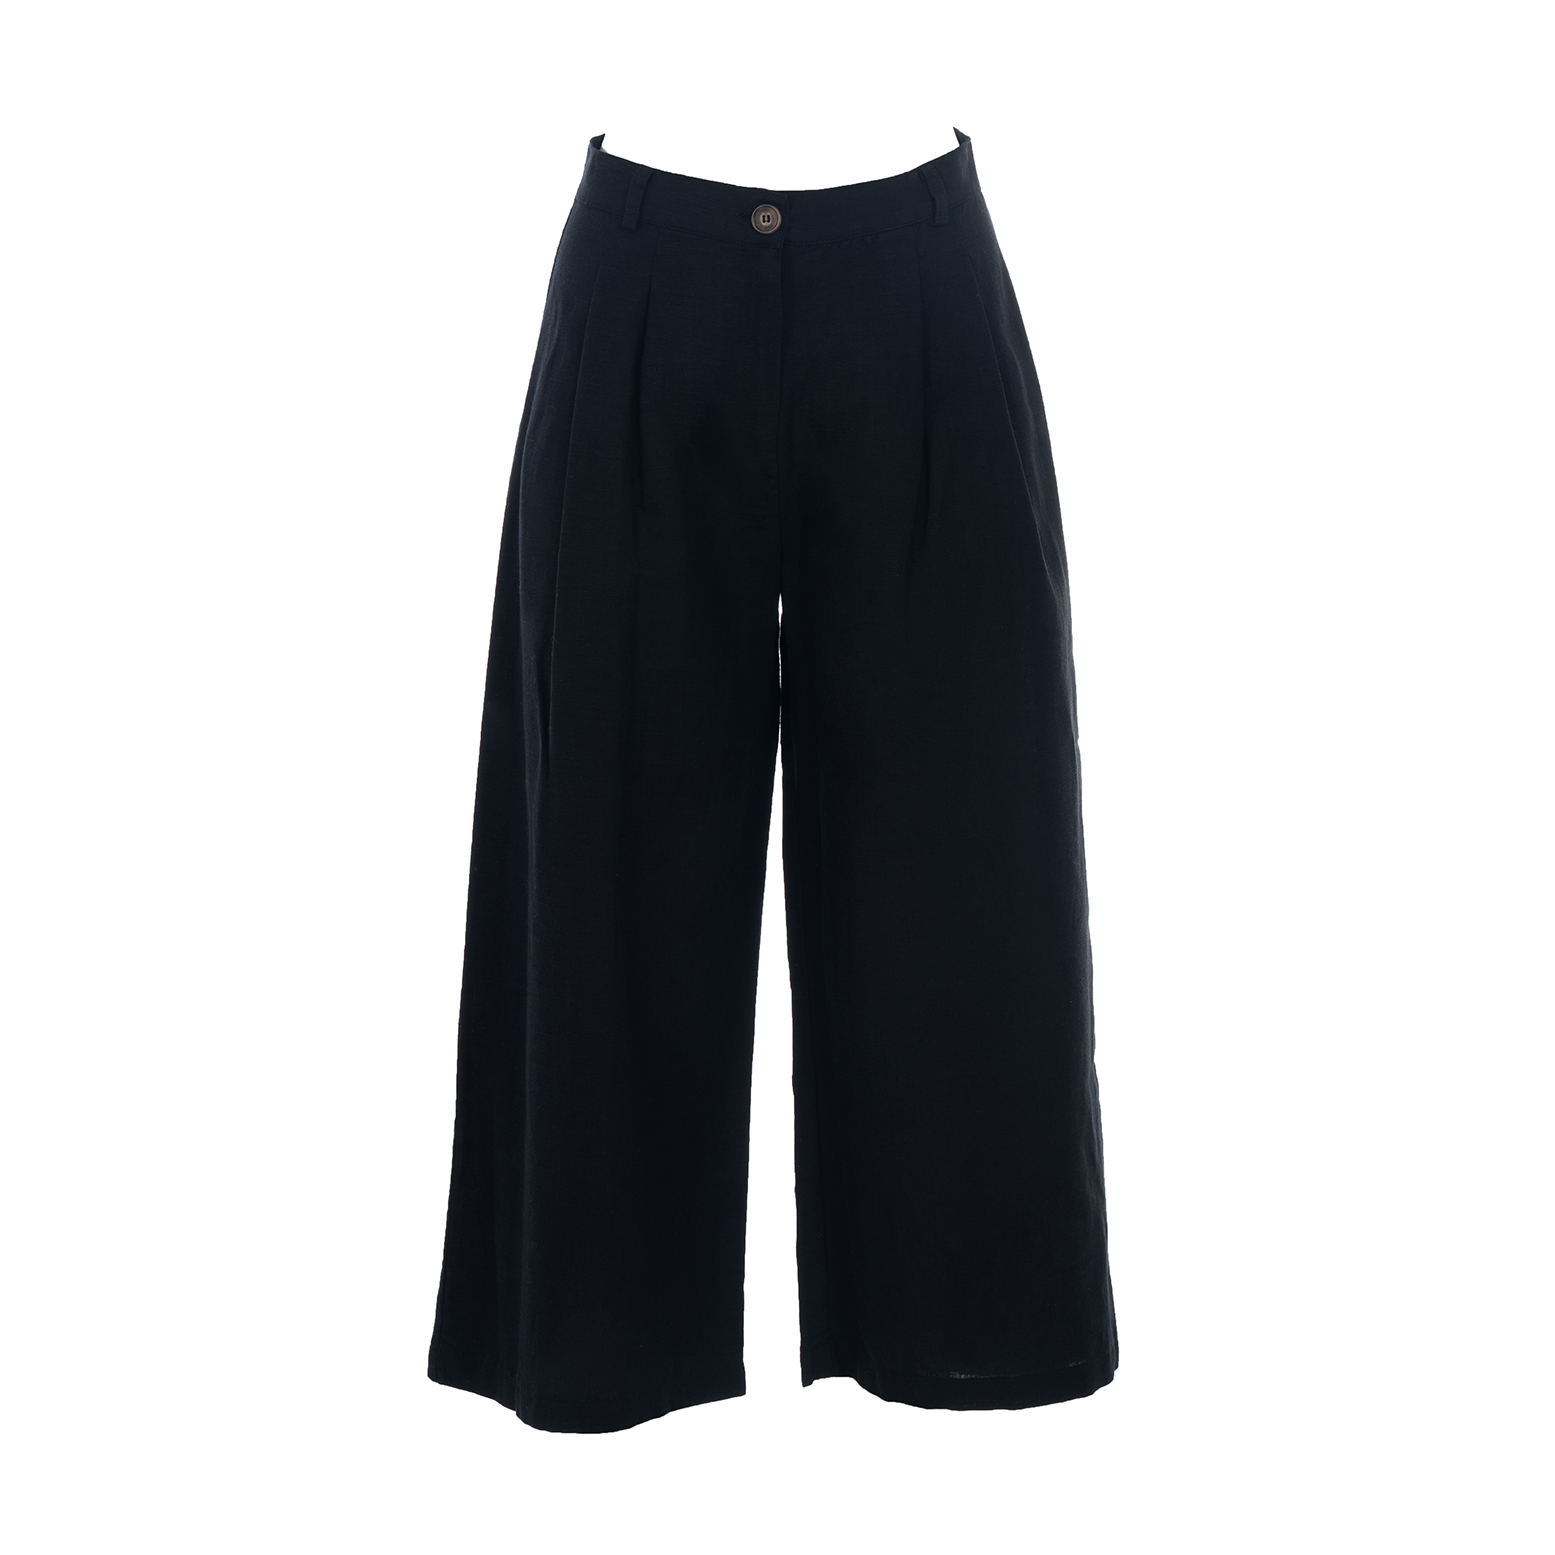 Linda Raff Collection -BEACH PANTS CORN BLACK LINEN